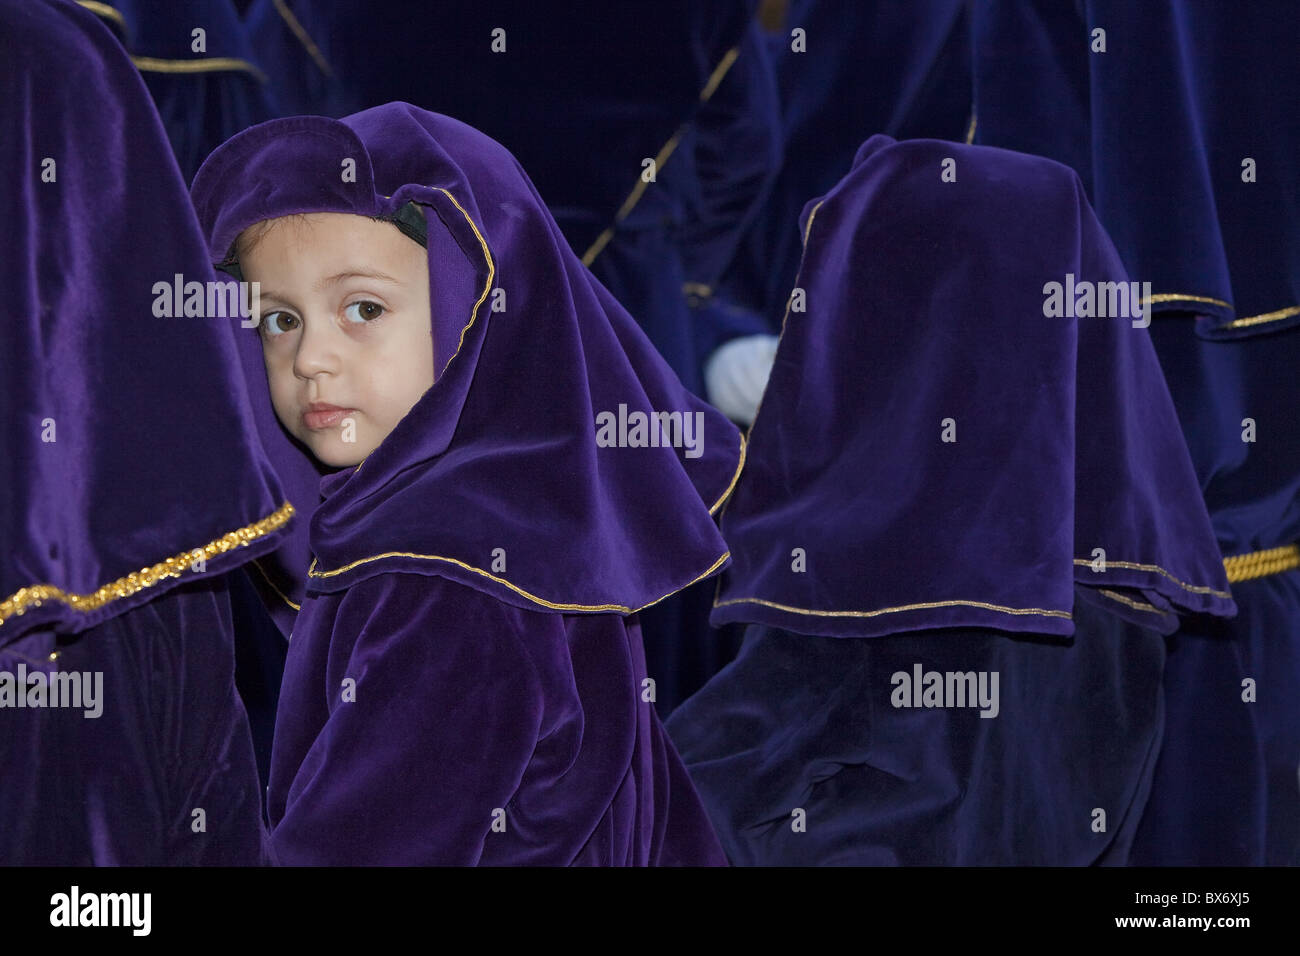 Semana Santa (Holy Week) celebrations, Malaga, Andalucia, Spain, Europe - Stock Image